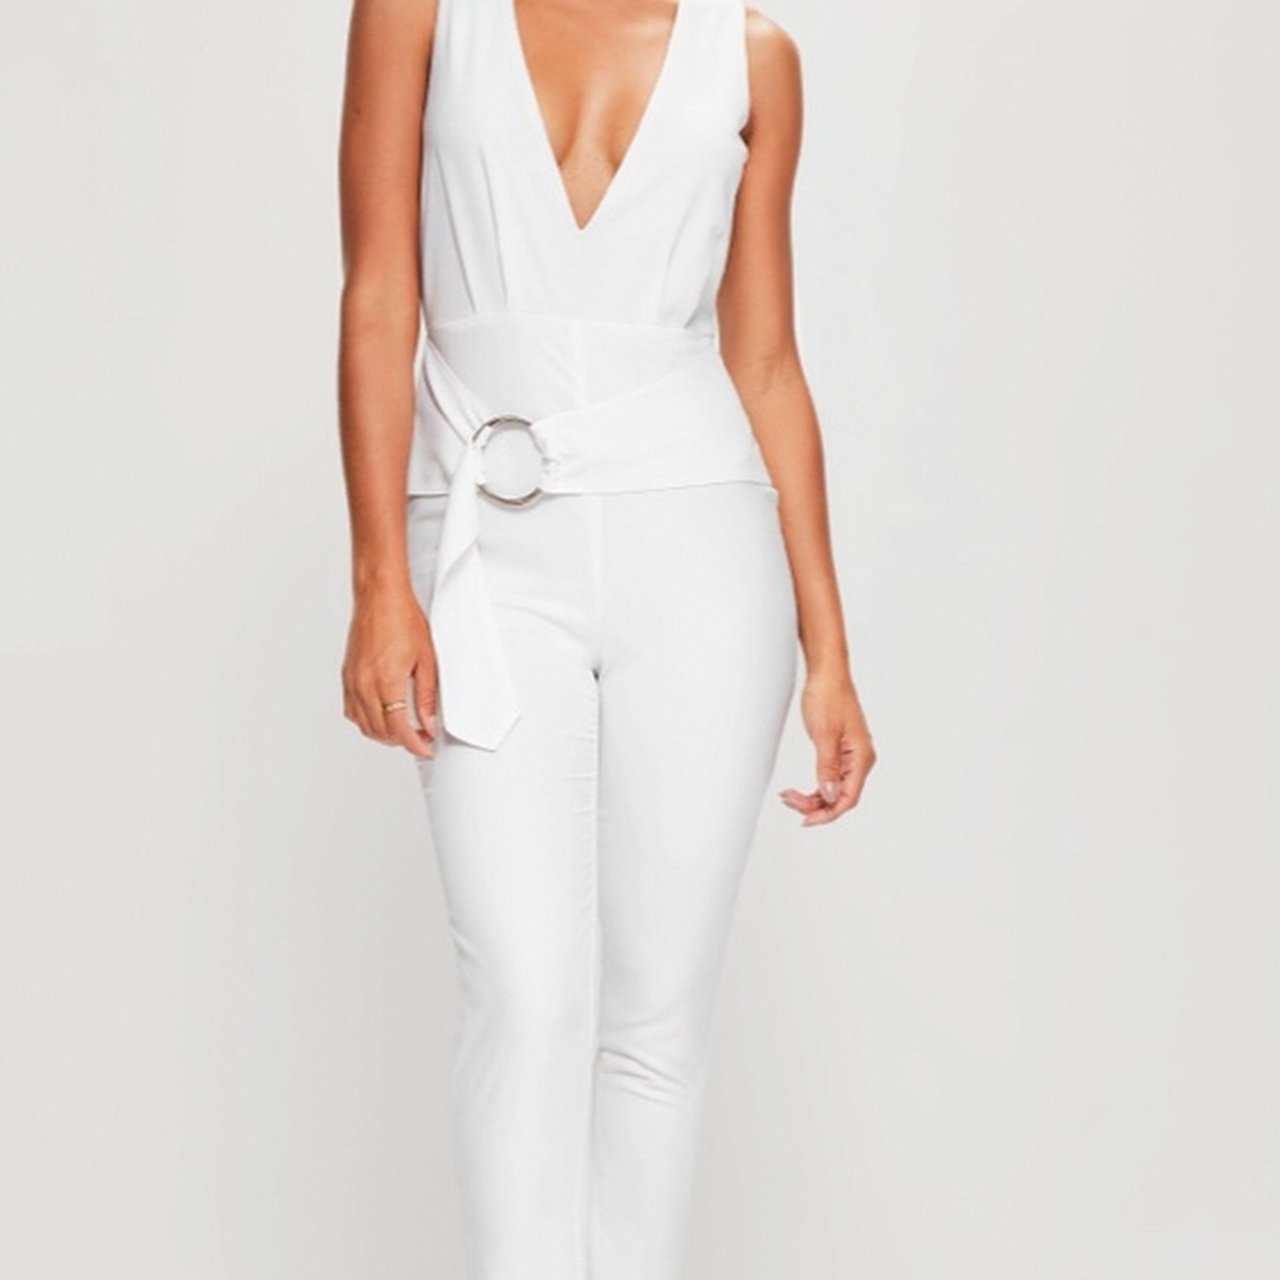 35cef8b5425 Missguided white jumpsuit New- 0